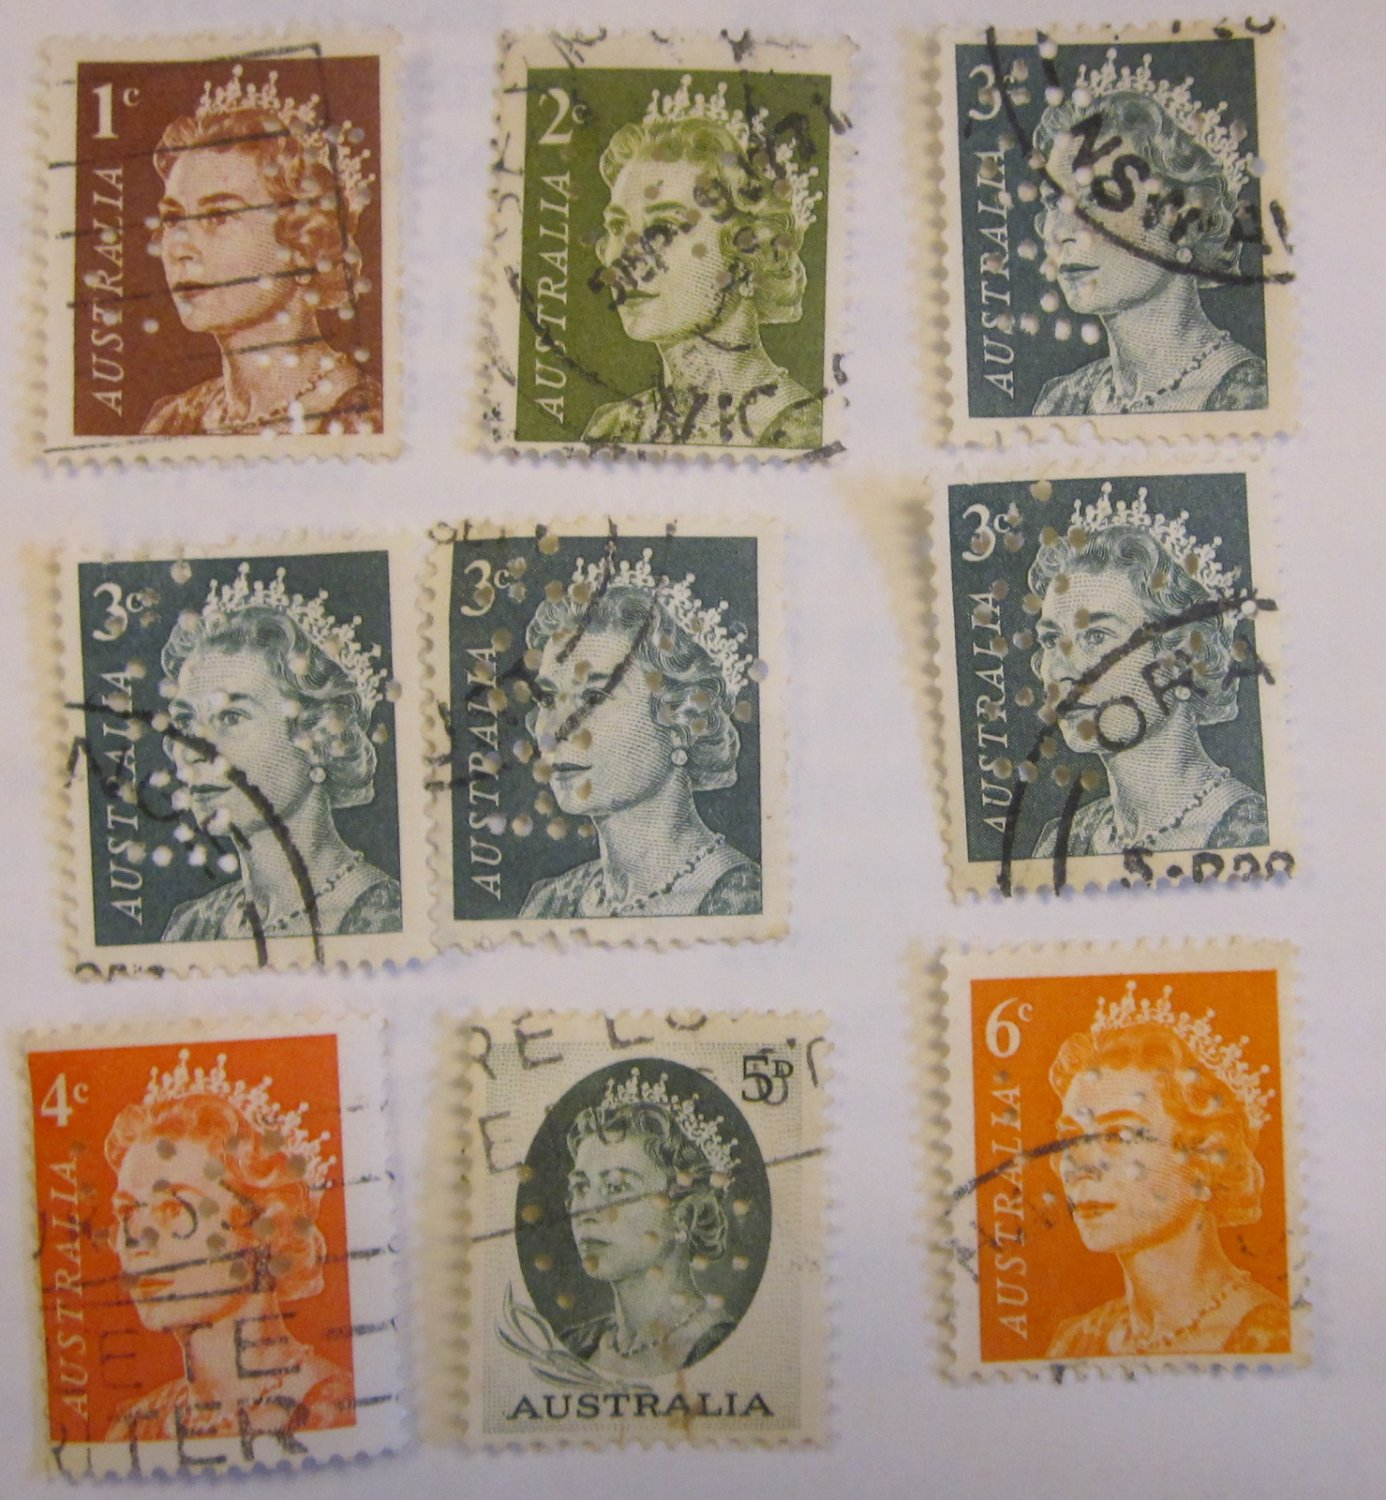 AUSTRALIA STAMPS CANCELED 9 Perfin